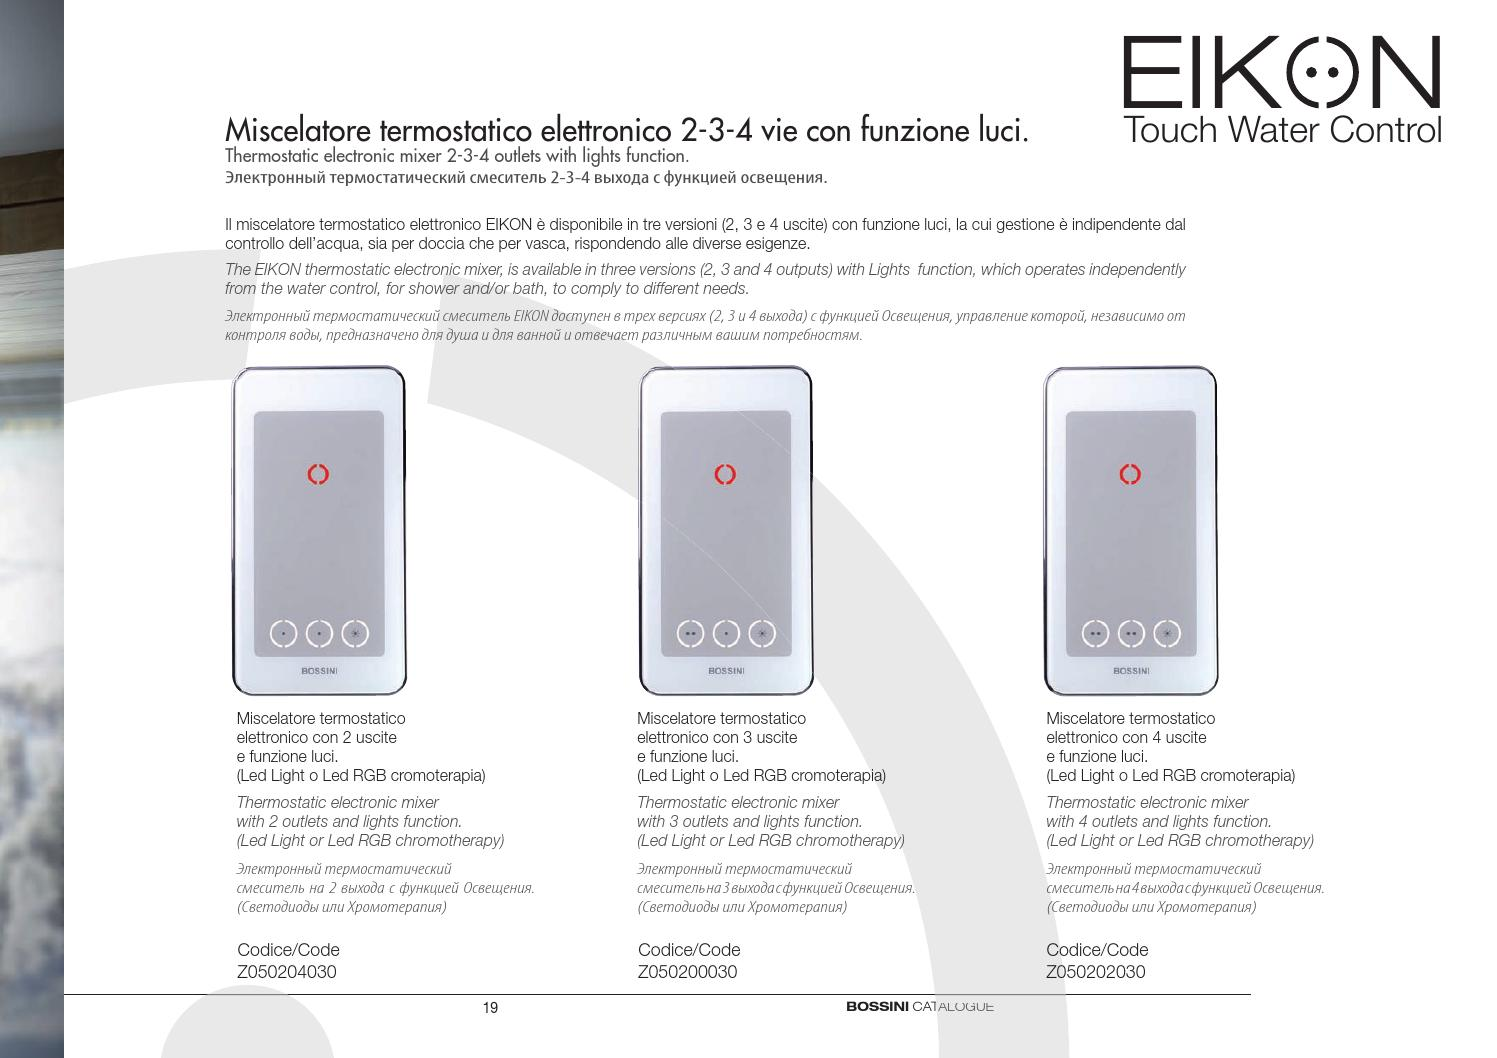 Luci Led Per Cromoterapia eikon touch water control by bossini spa - issuu